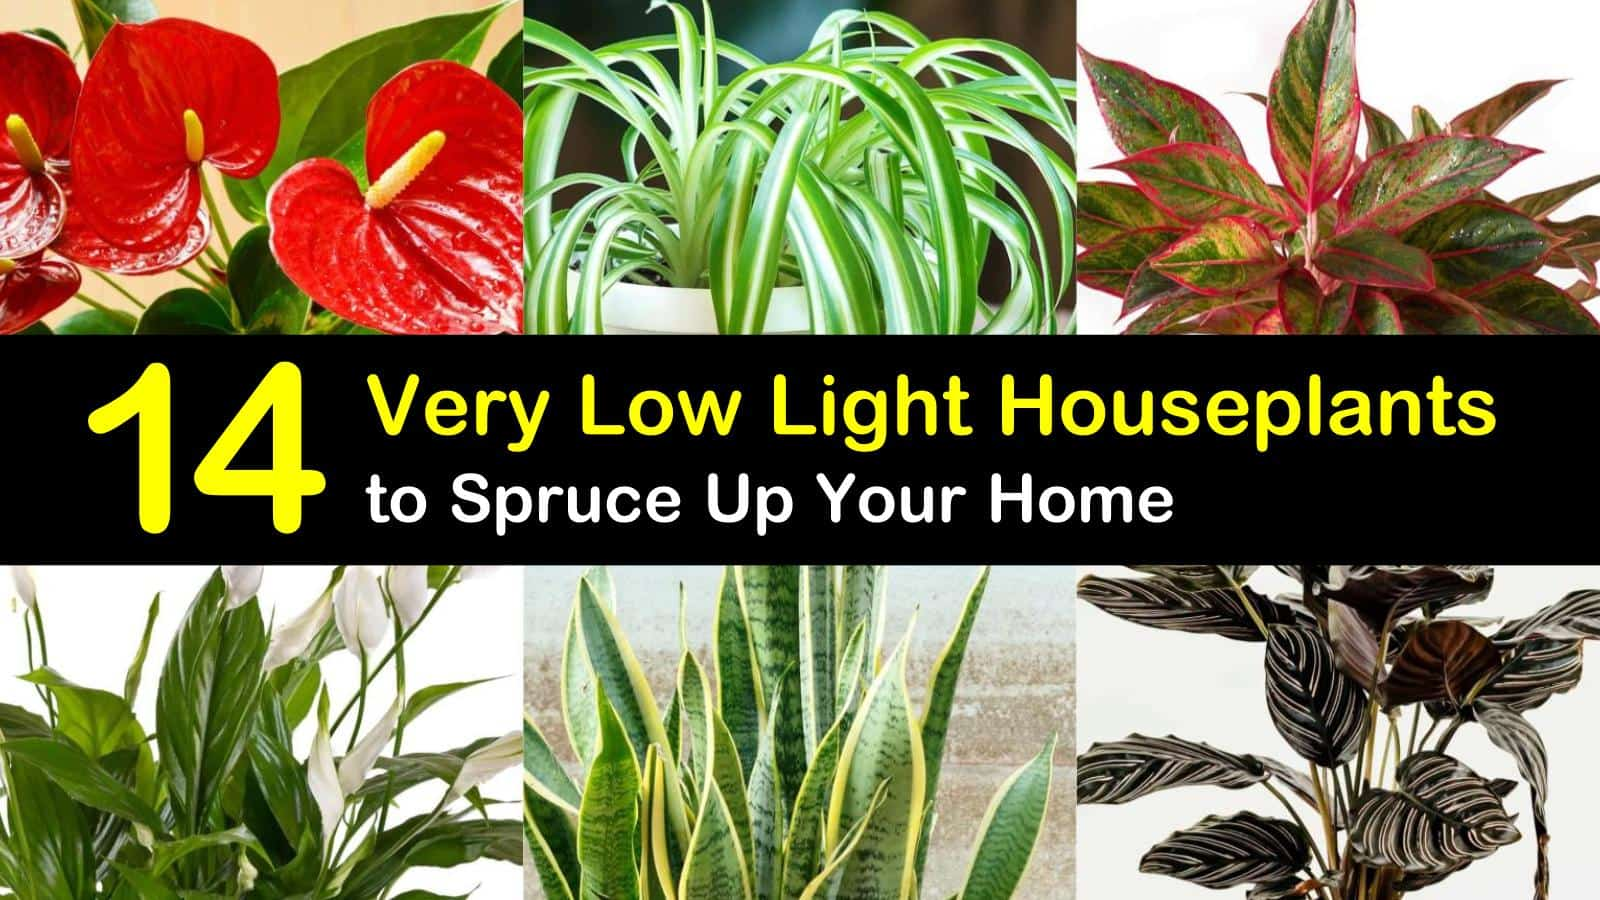 14 Very Low Light Houseplants to Spruce Up Your Home Zanzibar Gem Plant At Home on pomegranate plant, philodendron plant, fairy duster plant, indoor rubber tree plant, money tree plant, topiary plant, croton plant, pot plant, jade plant,